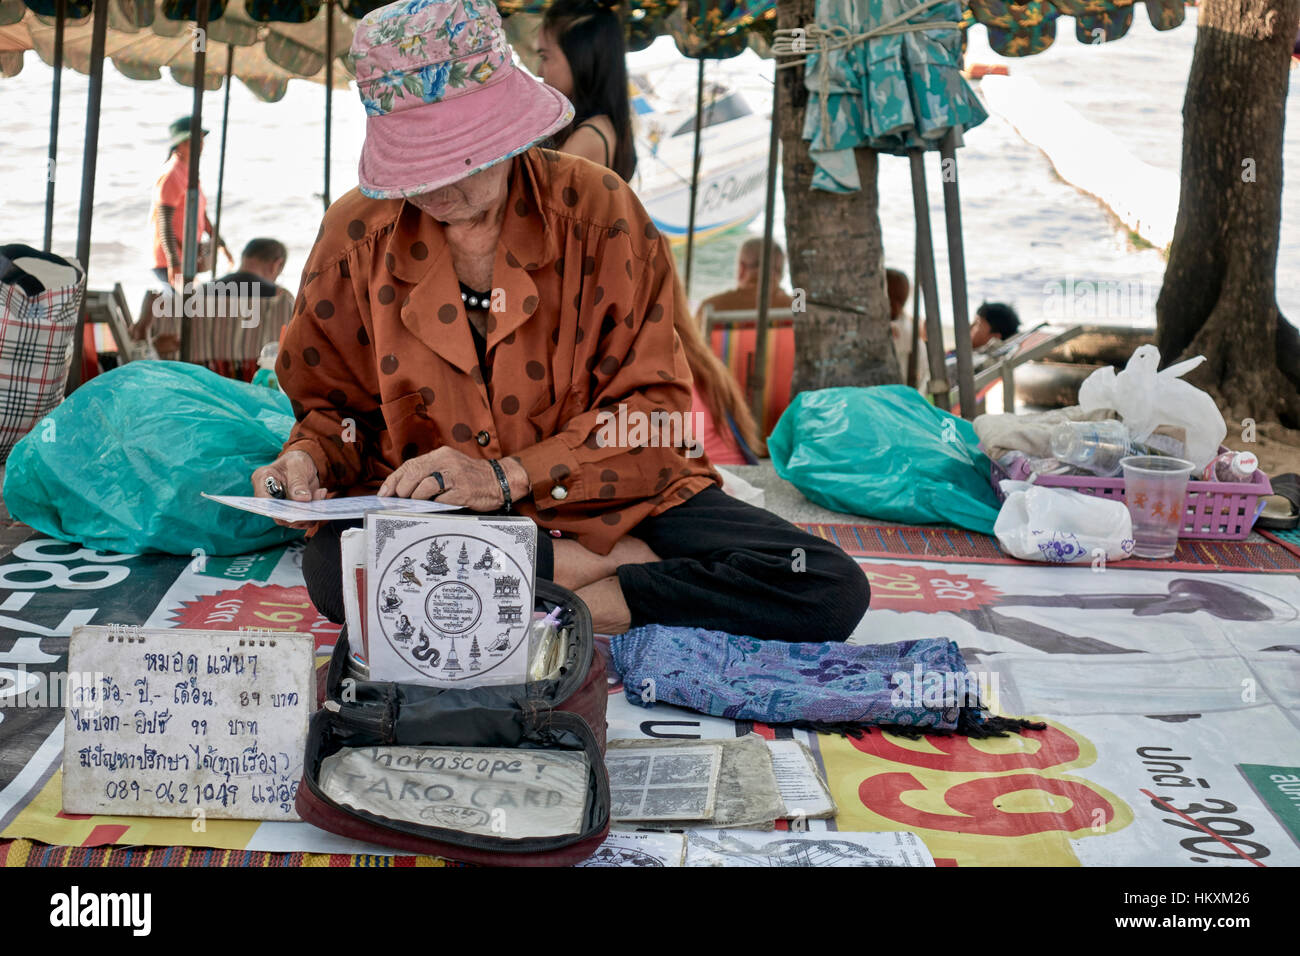 Female Tarot card reader and fortune teller. Thailand Southeast Asia - Stock Image